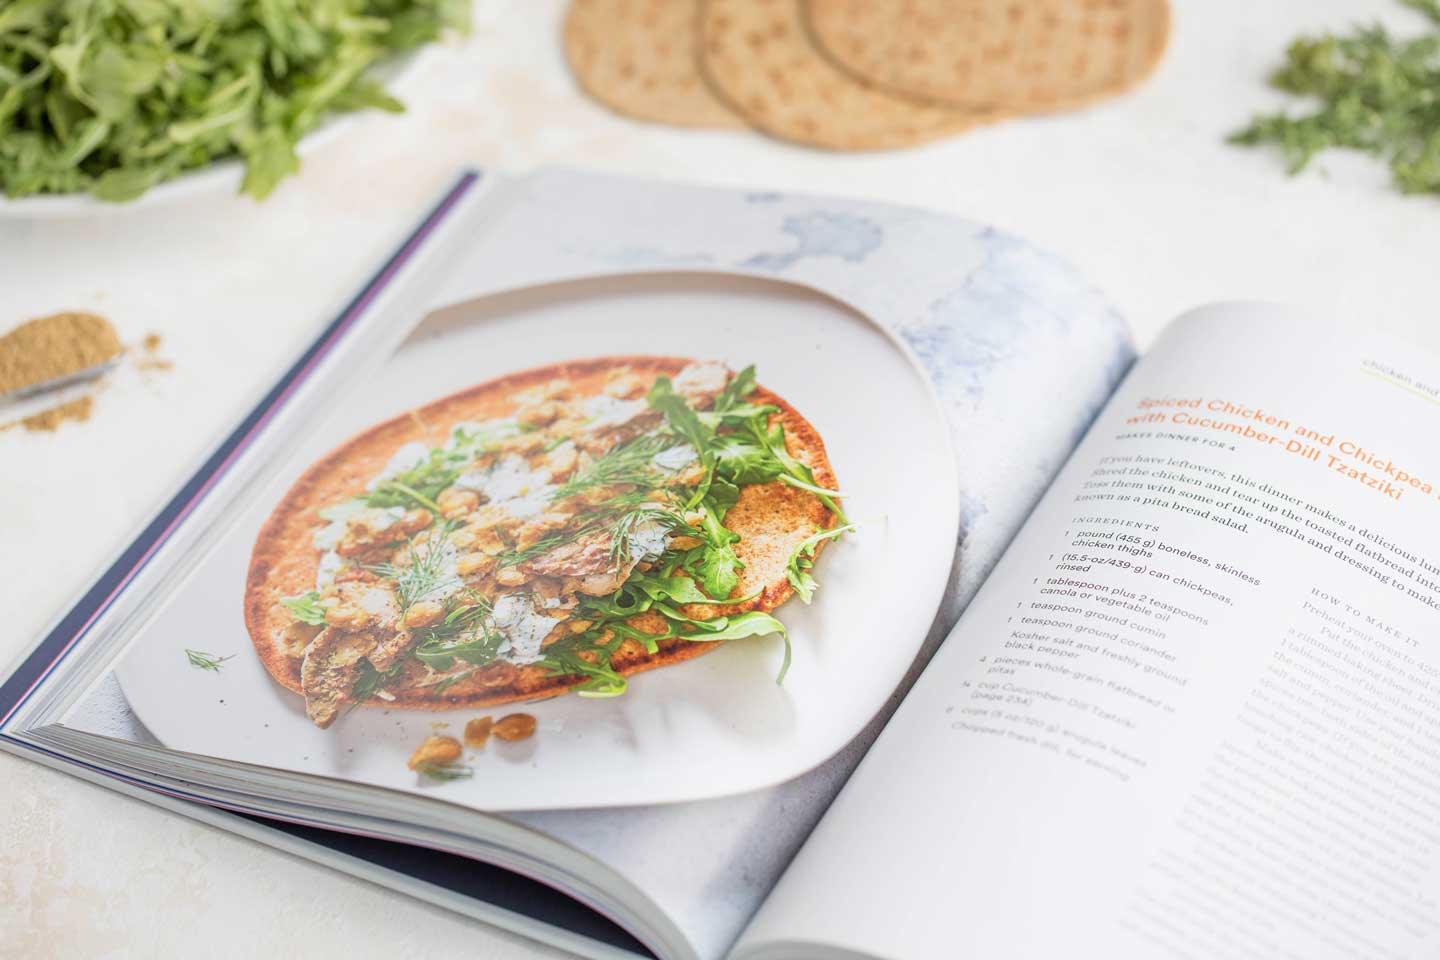 Besides the one pot, whole wheat pasta recipe I'm sharing with you on the blog today, another of the recipes we tried out of this gorgeous cookbook was this one, for Spiced Chicken and Chickpea Flatbreads with Cucumber-Dill Tzatziki.